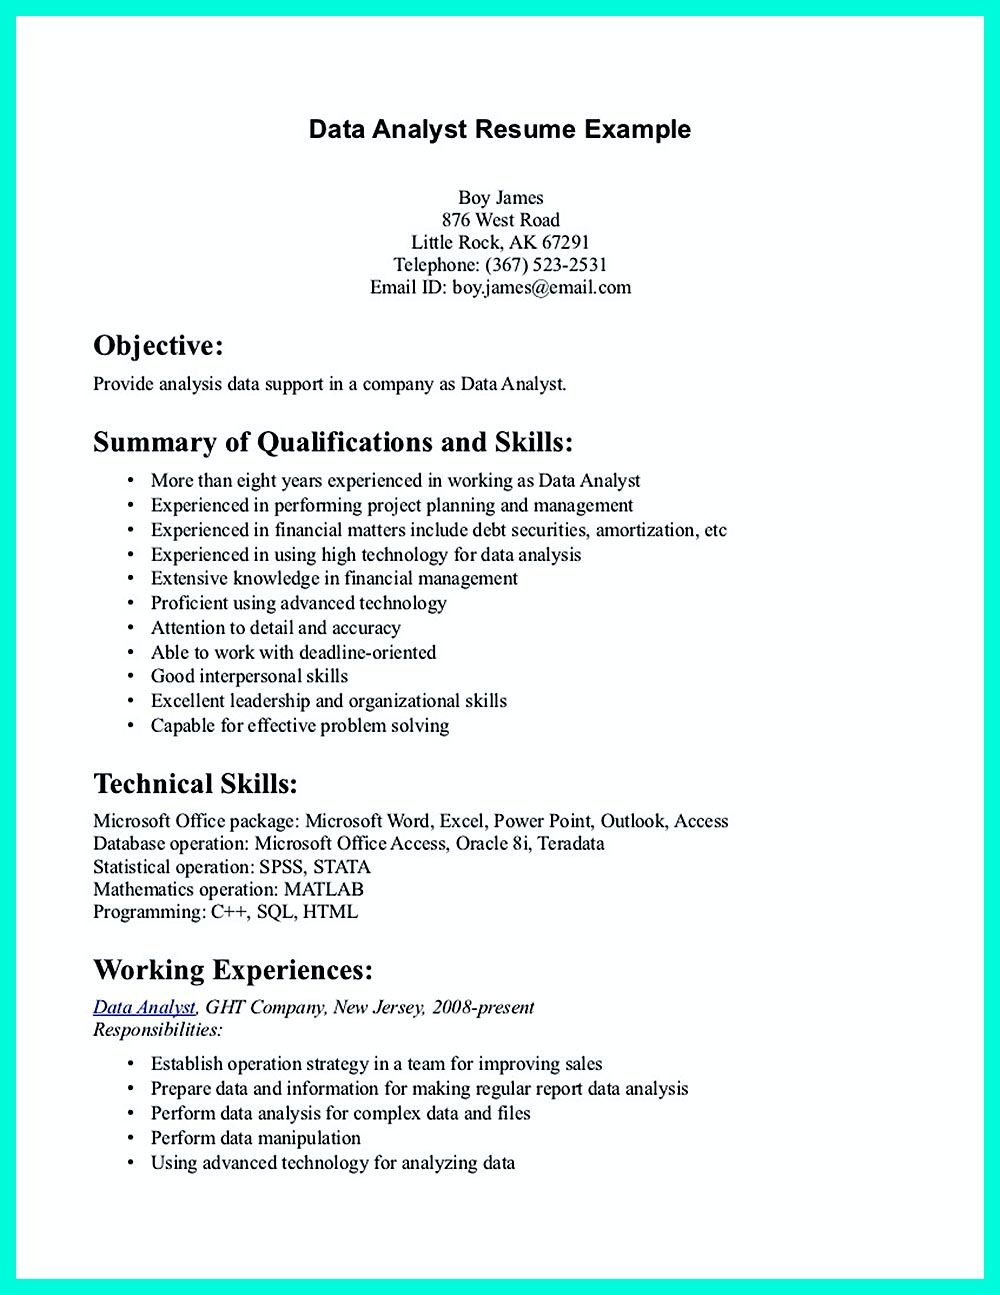 Data analyst resume will describe your professional